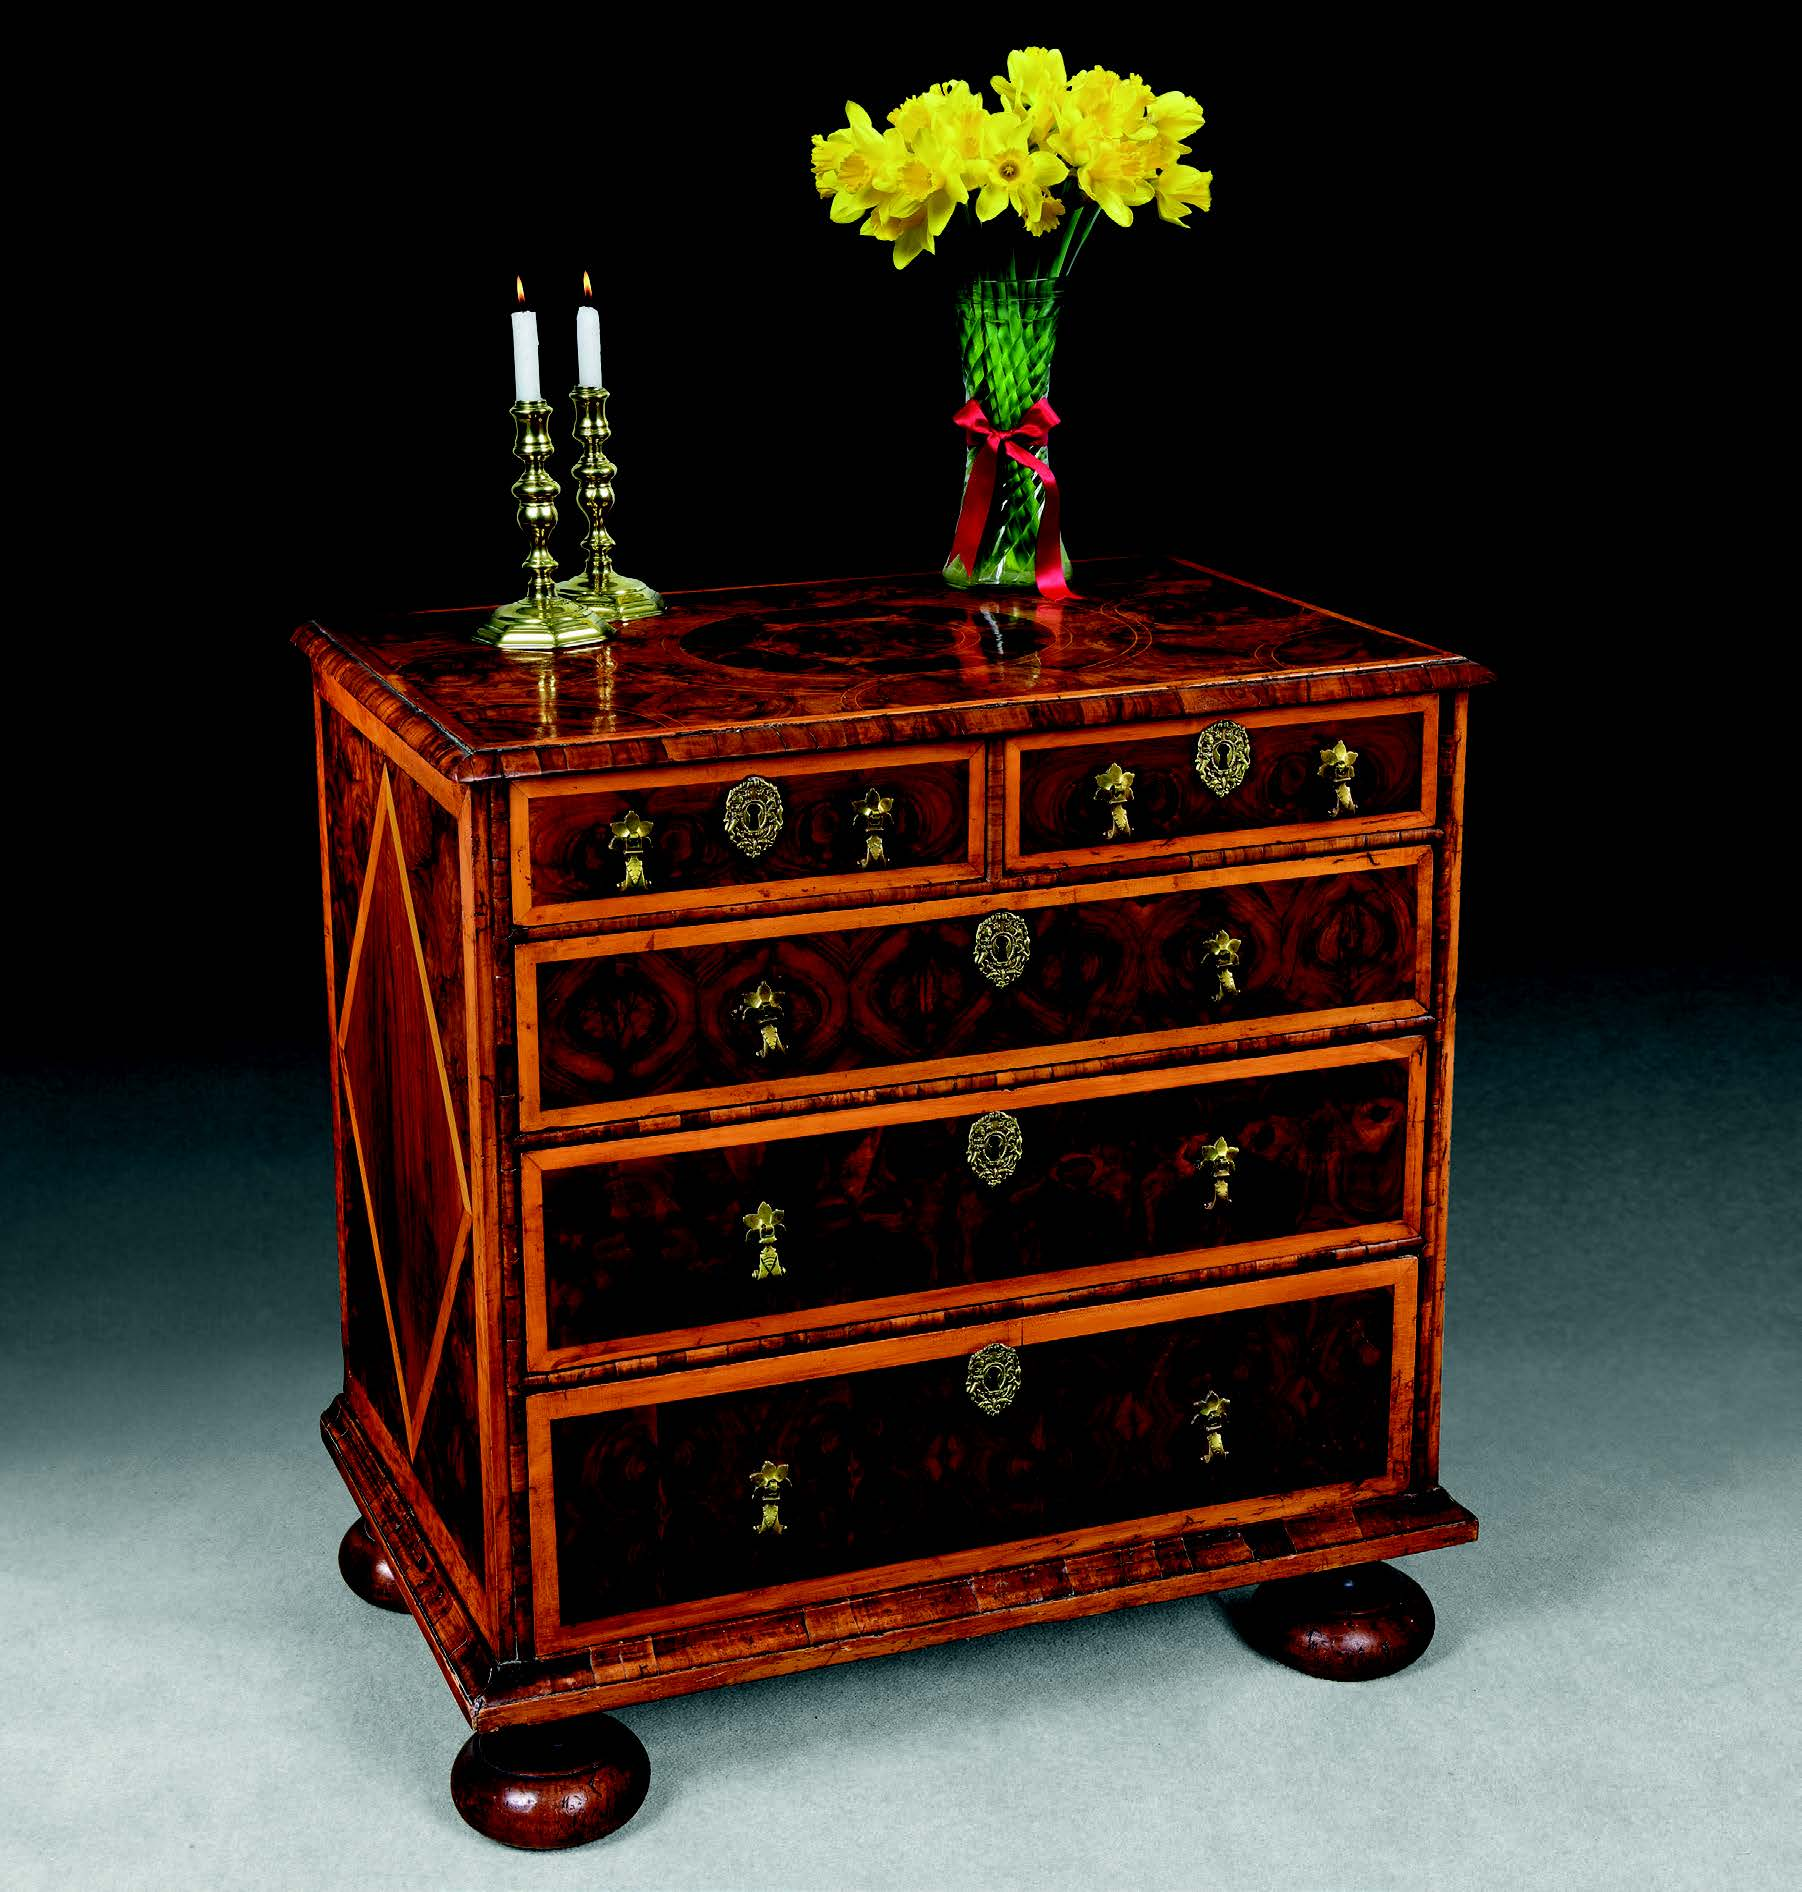 A Queen Anne oyster-veneered chest of drawers, c. 1700